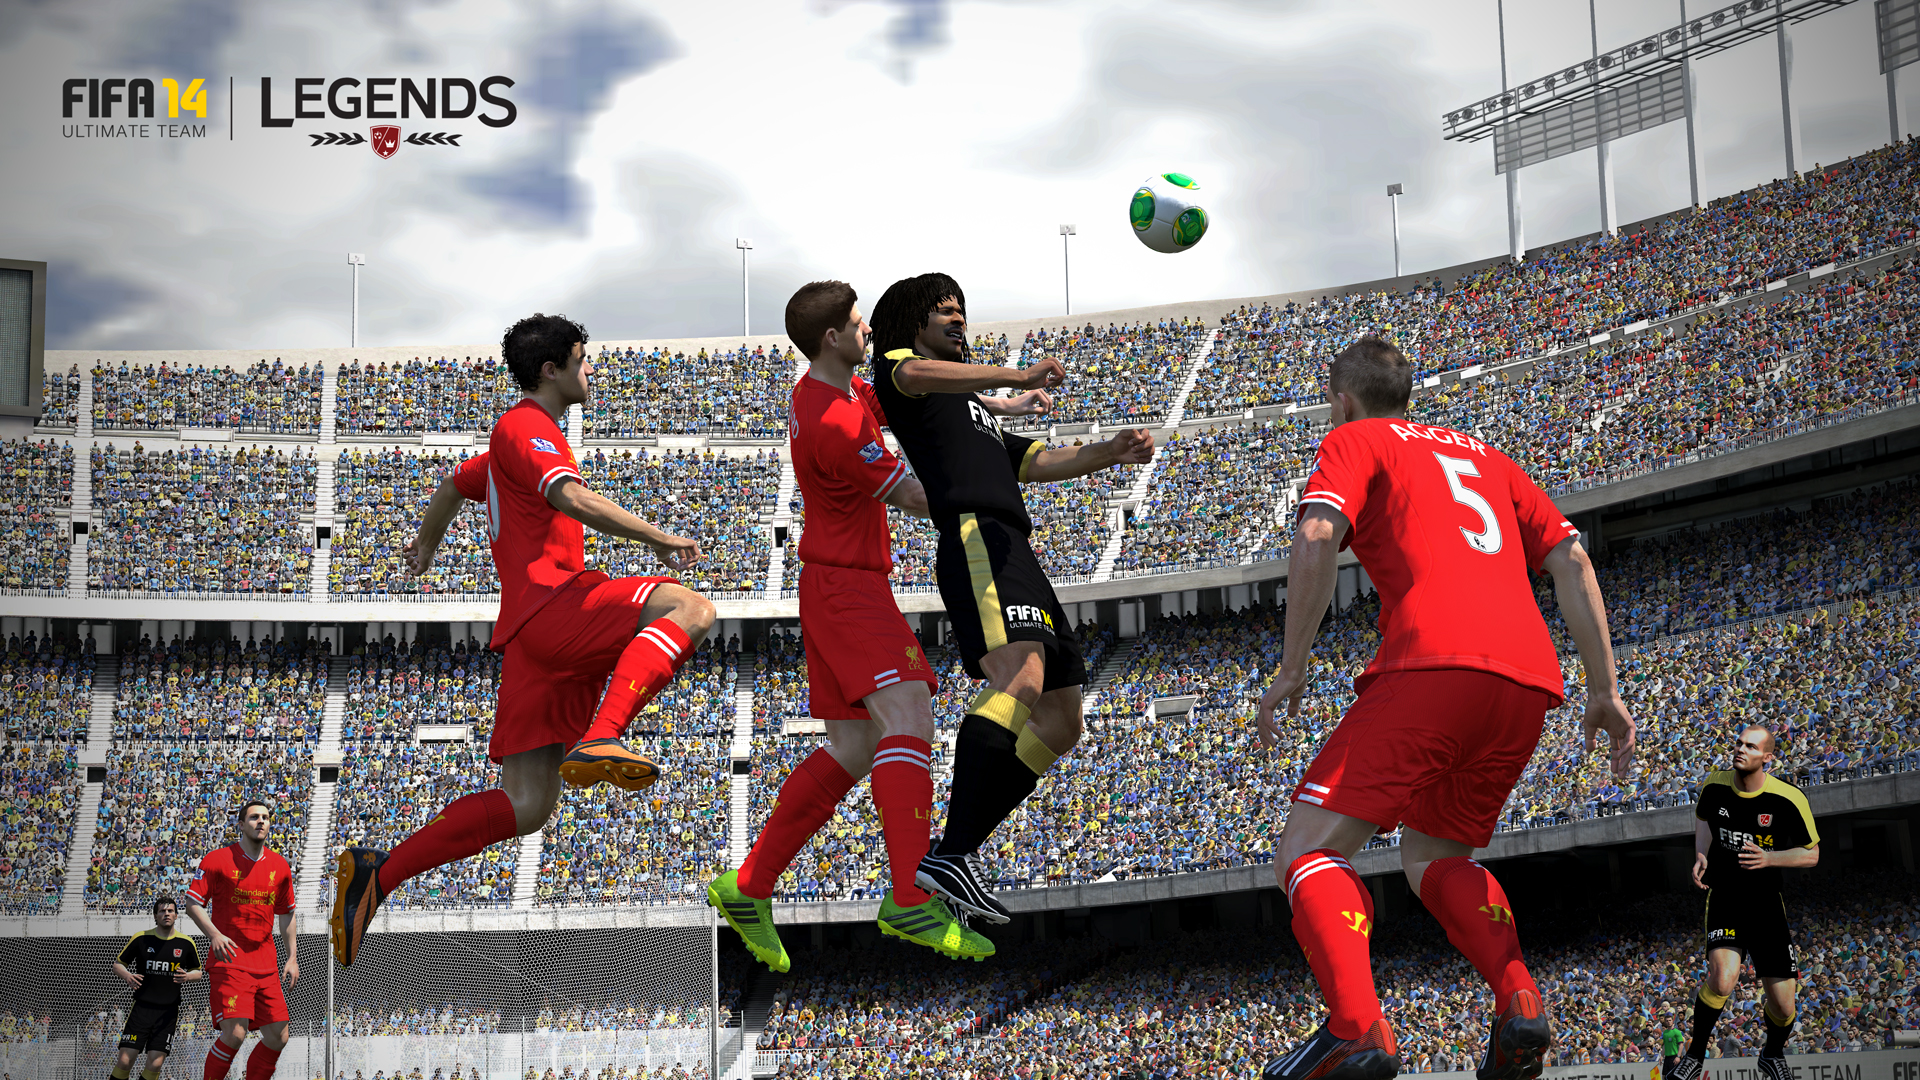 Fifa 14 ultimate team legends mode onpause voltagebd Image collections